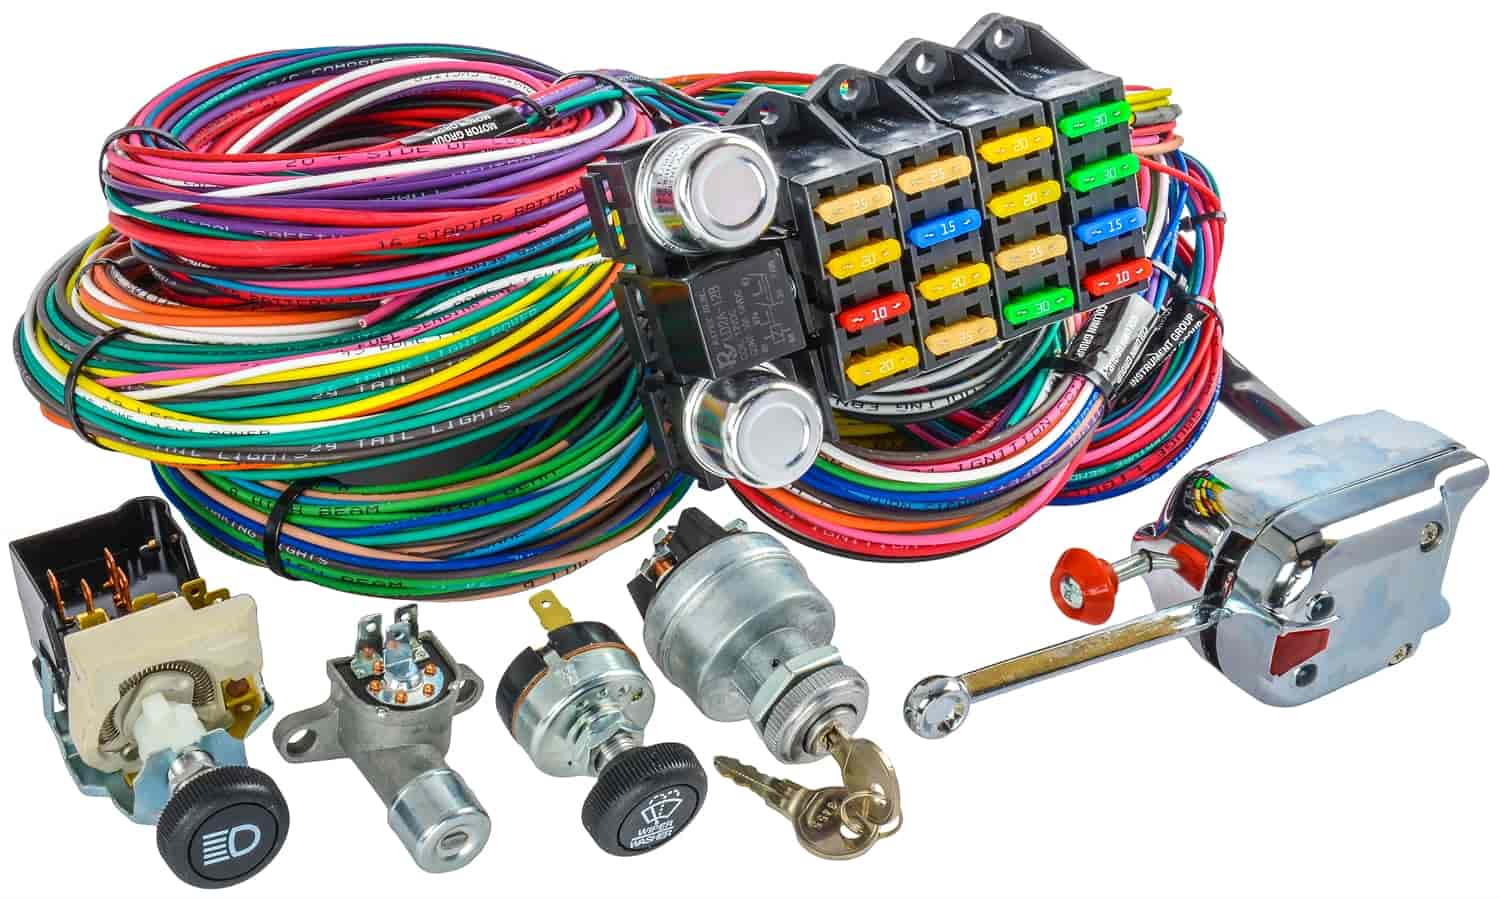 555 10405k jegs performance products 10405k universal wiring harness jegs universal wiring harness at panicattacktreatment.co